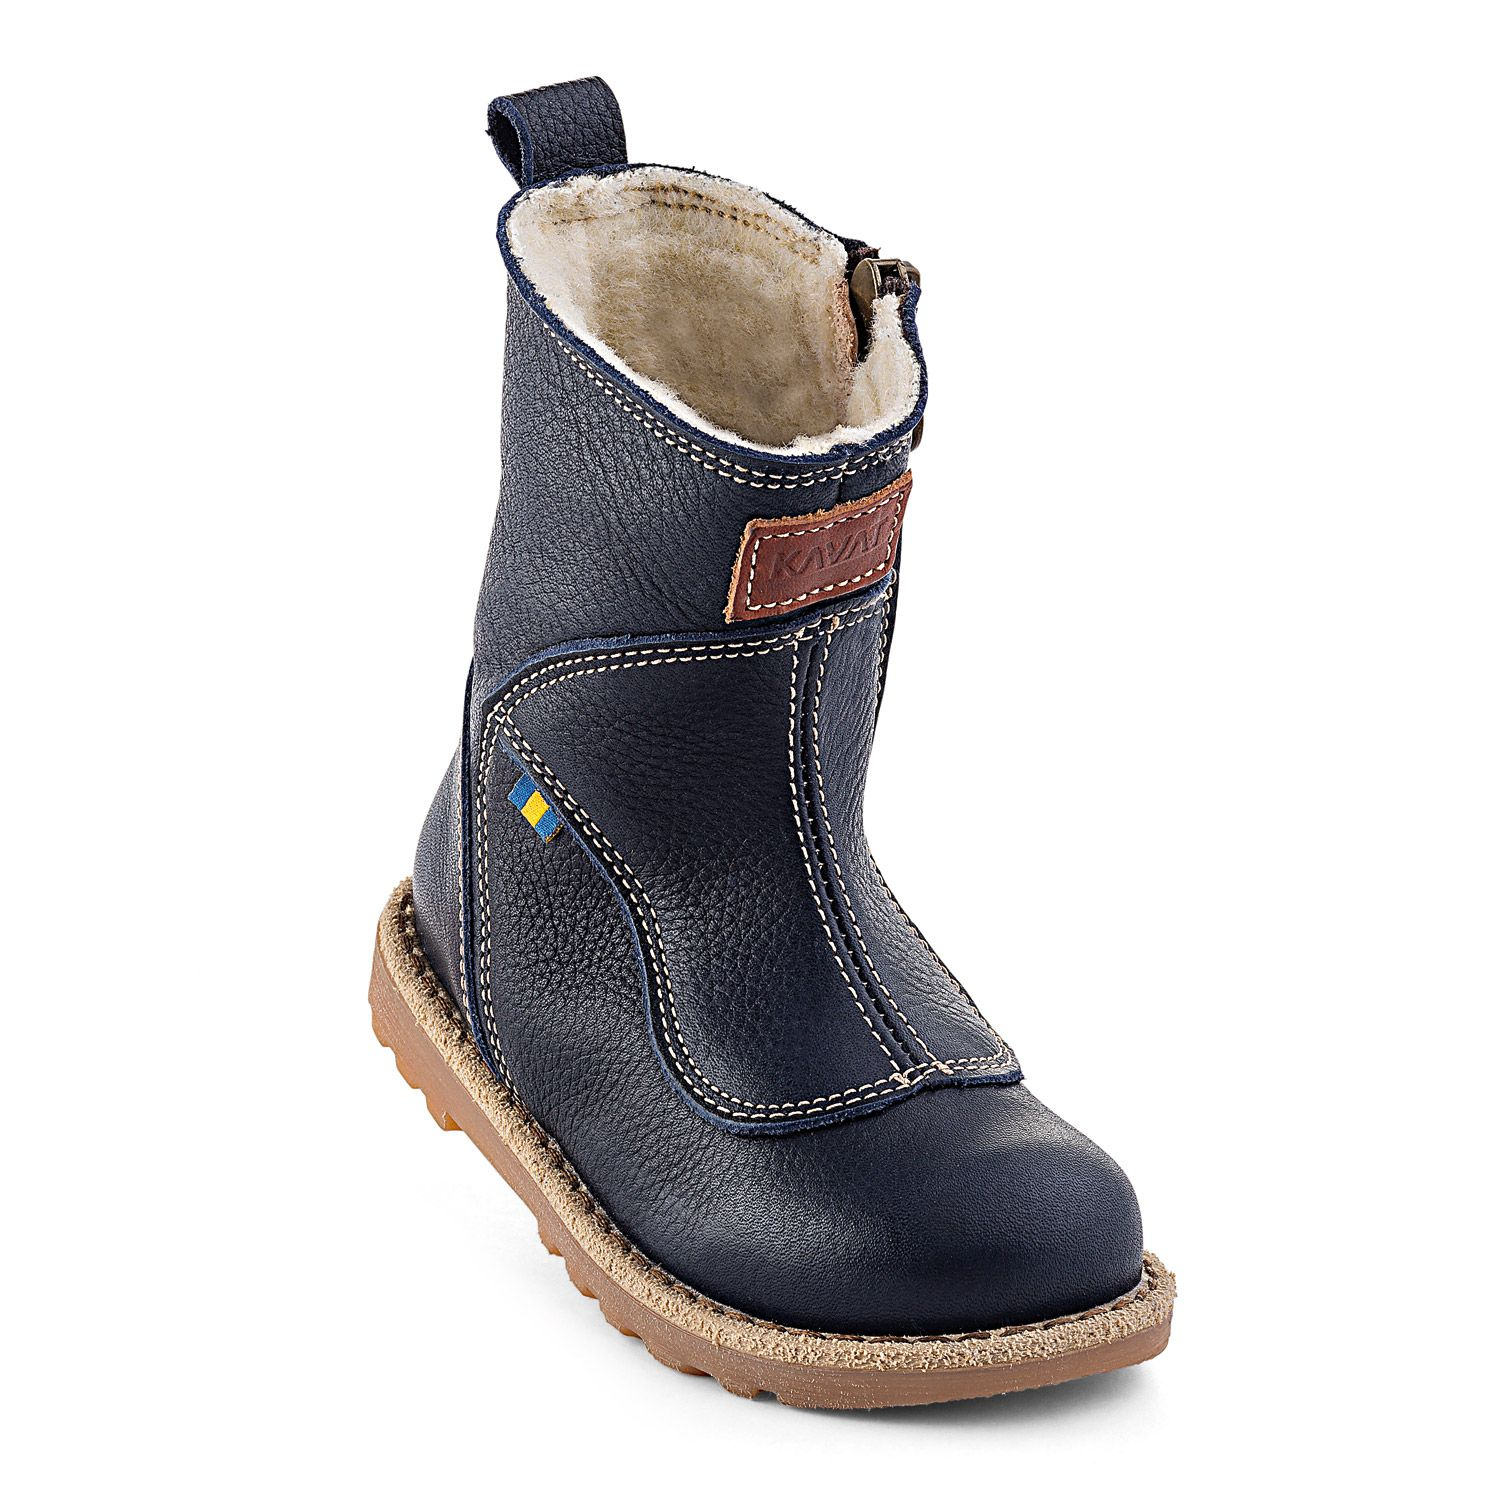 new styles 66822 d47e1 Stiefel NORBERG von Kavat | for the kids | Ugg boots, Uggs ...